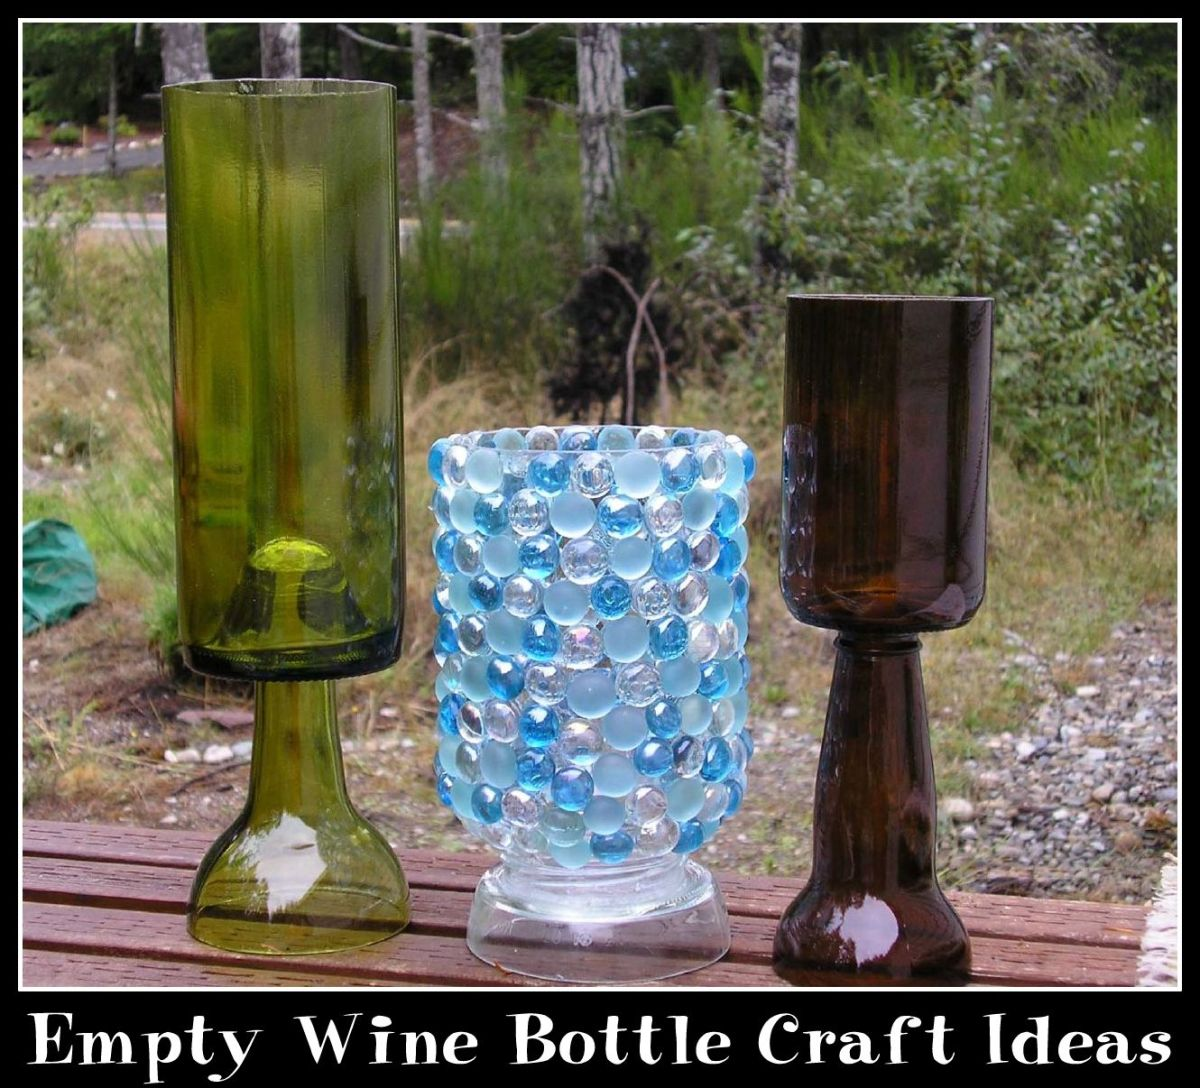 Empty Wine Bottle Craft Ideas